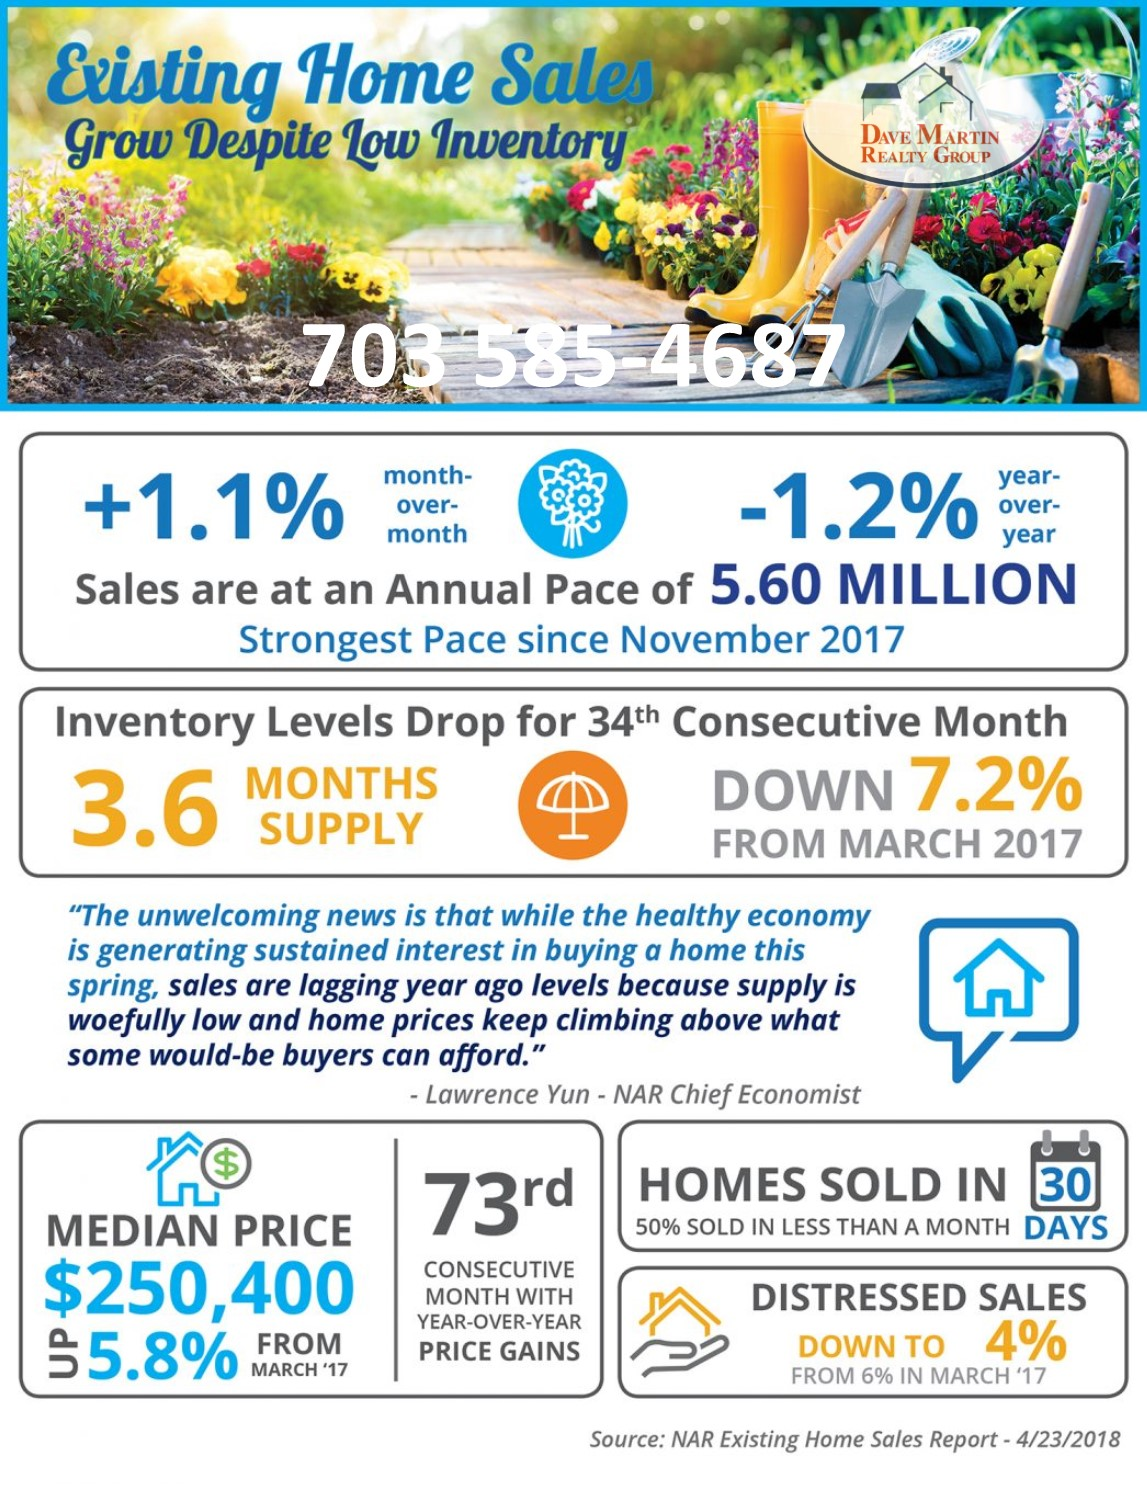 Fairfax Alexandria Virginia Real Estate Market Update Home Buying Home Selling Realtor